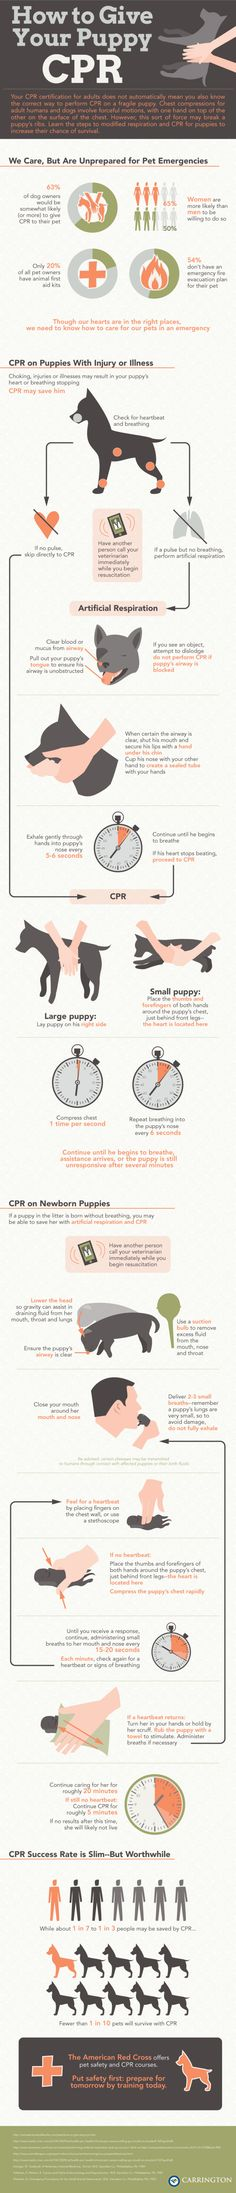 Would you know what to do if you saw your dog choking? If not, it's important to learn dog CPR. Find out how to perform CPR on adult dogs and puppies here. #DogMom